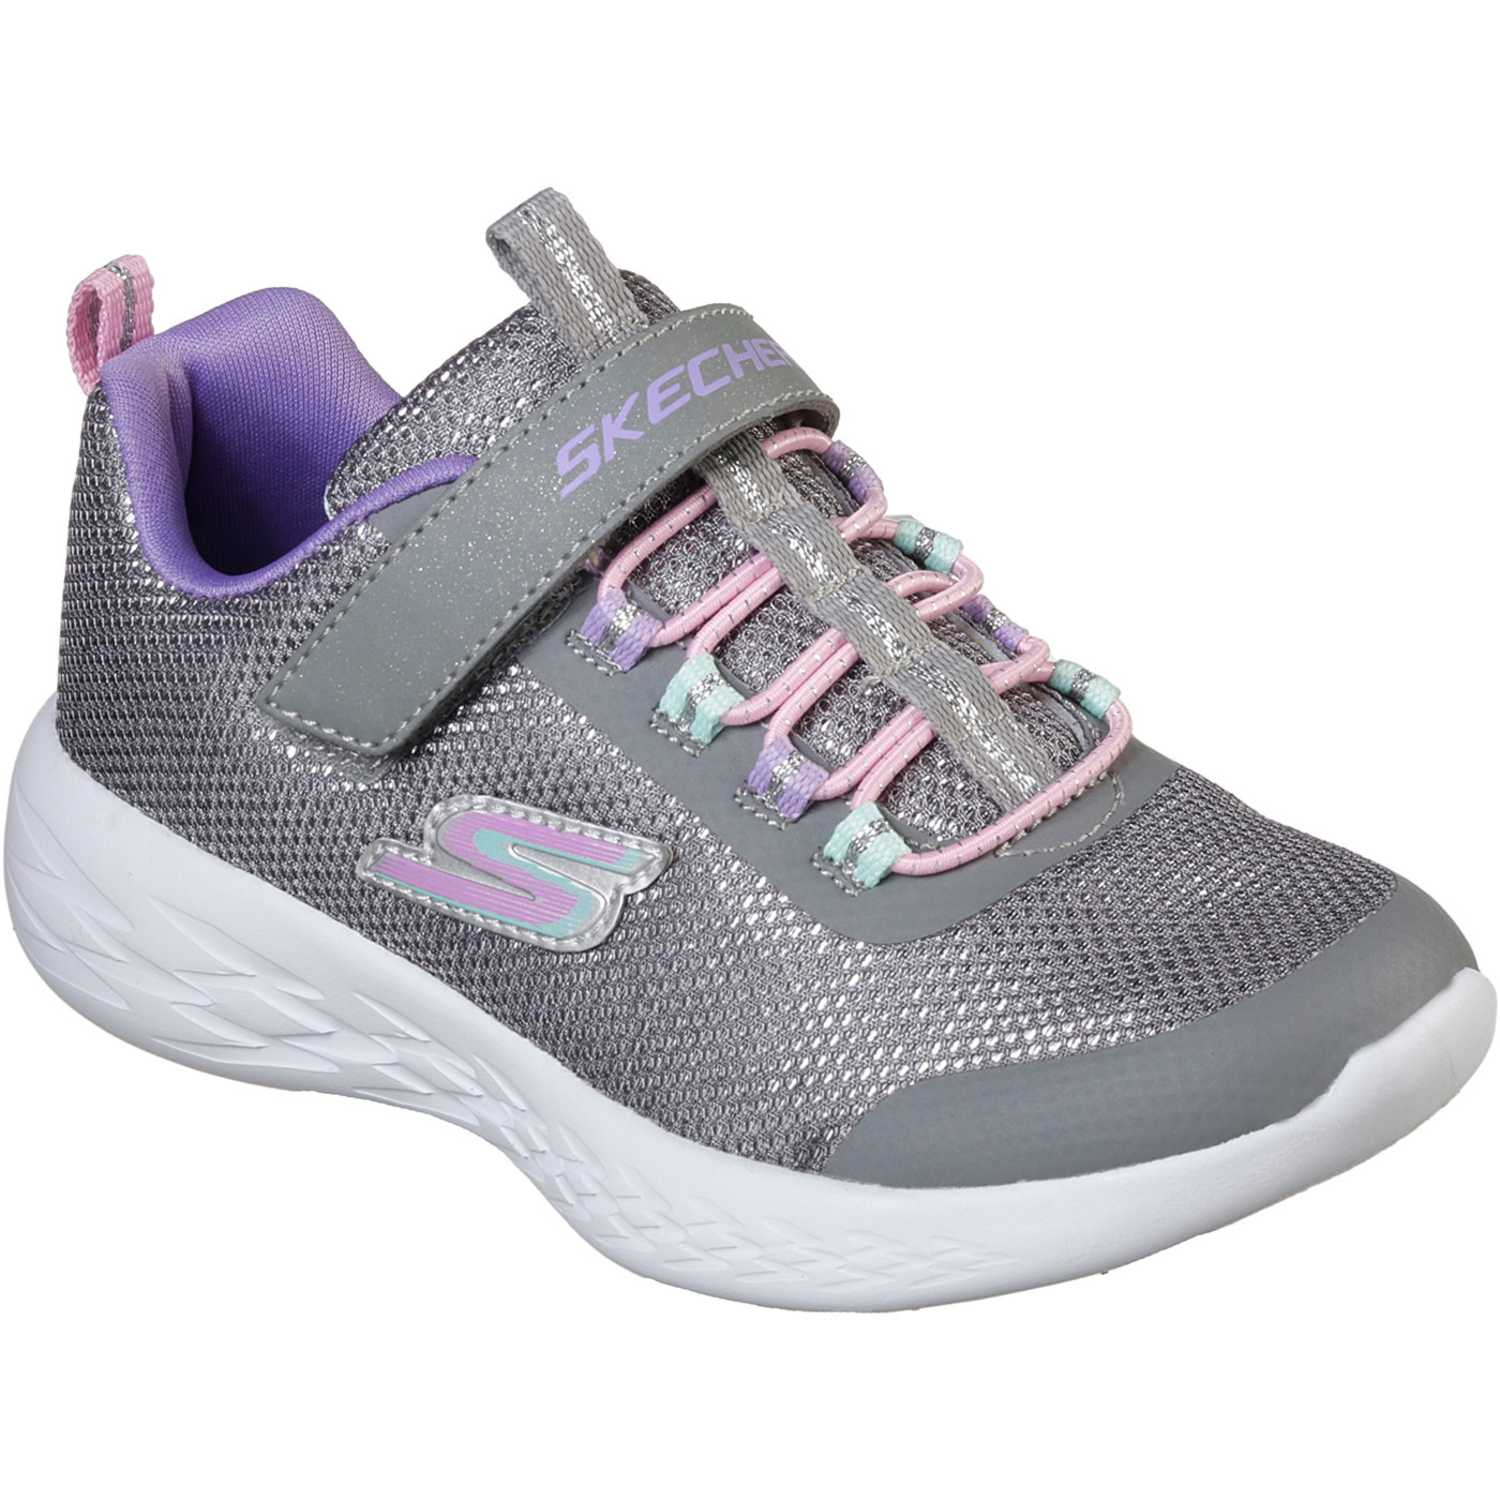 Zapatilla de Niña Skechers Gris go run 600 - sparkle runner